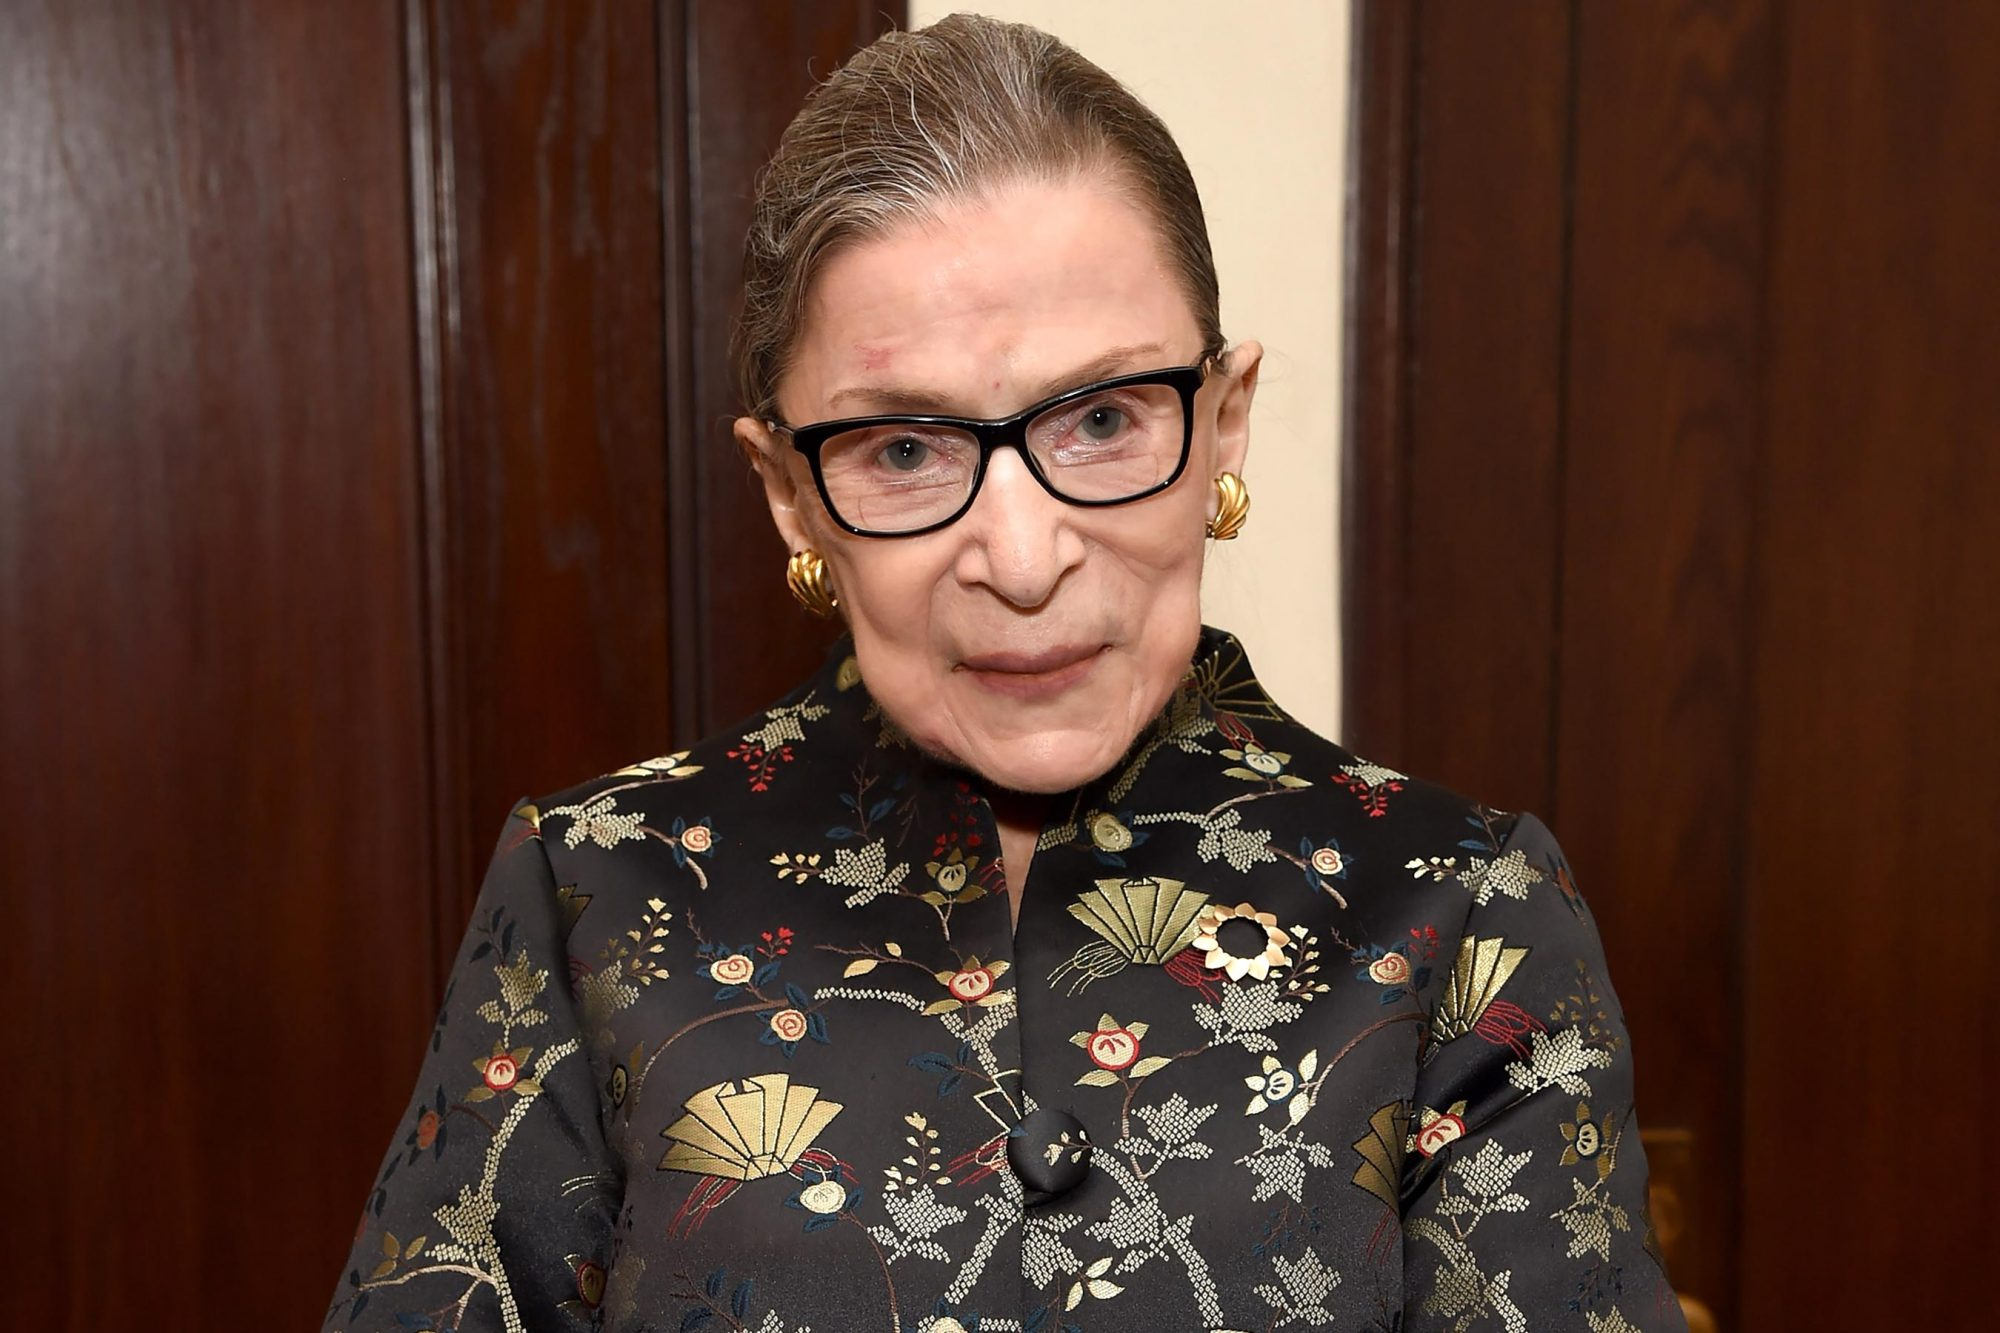 An Historic Evening with Supreme Court Justice Ruth Bader Ginsburg